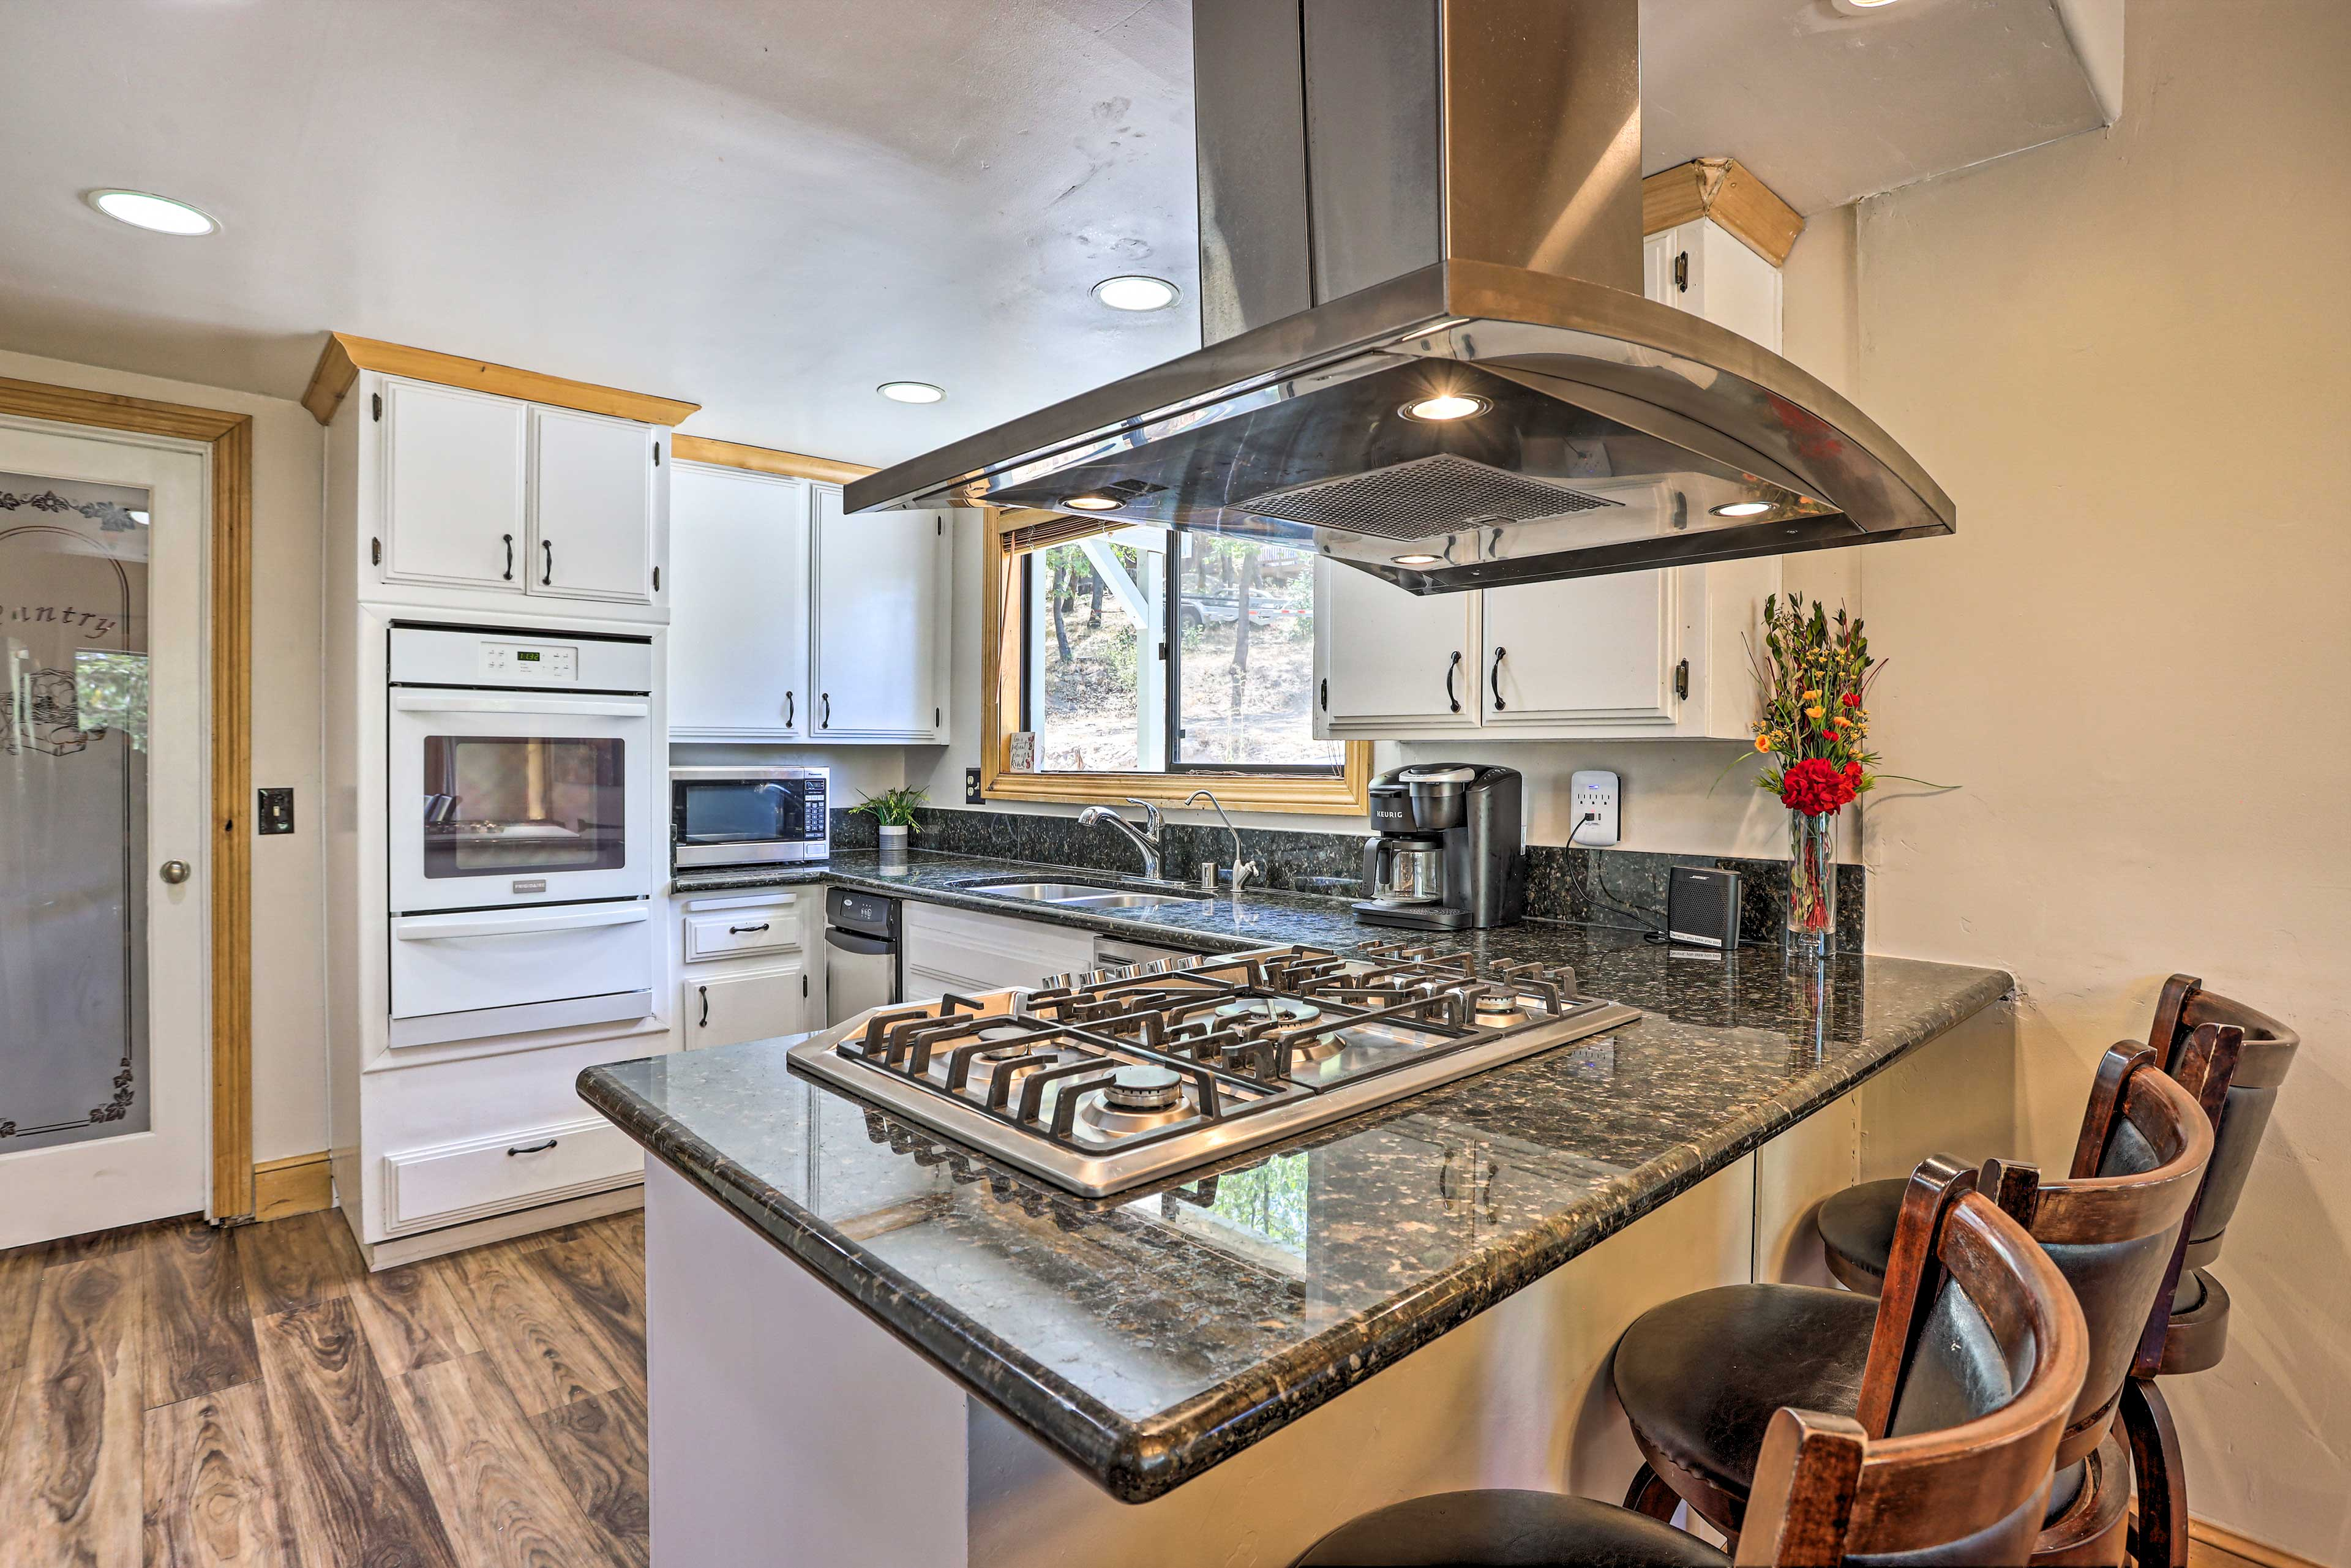 Fully Equipped Kitchen | Gas Range Stove | Crock Pot | Cooking Basics | Spices